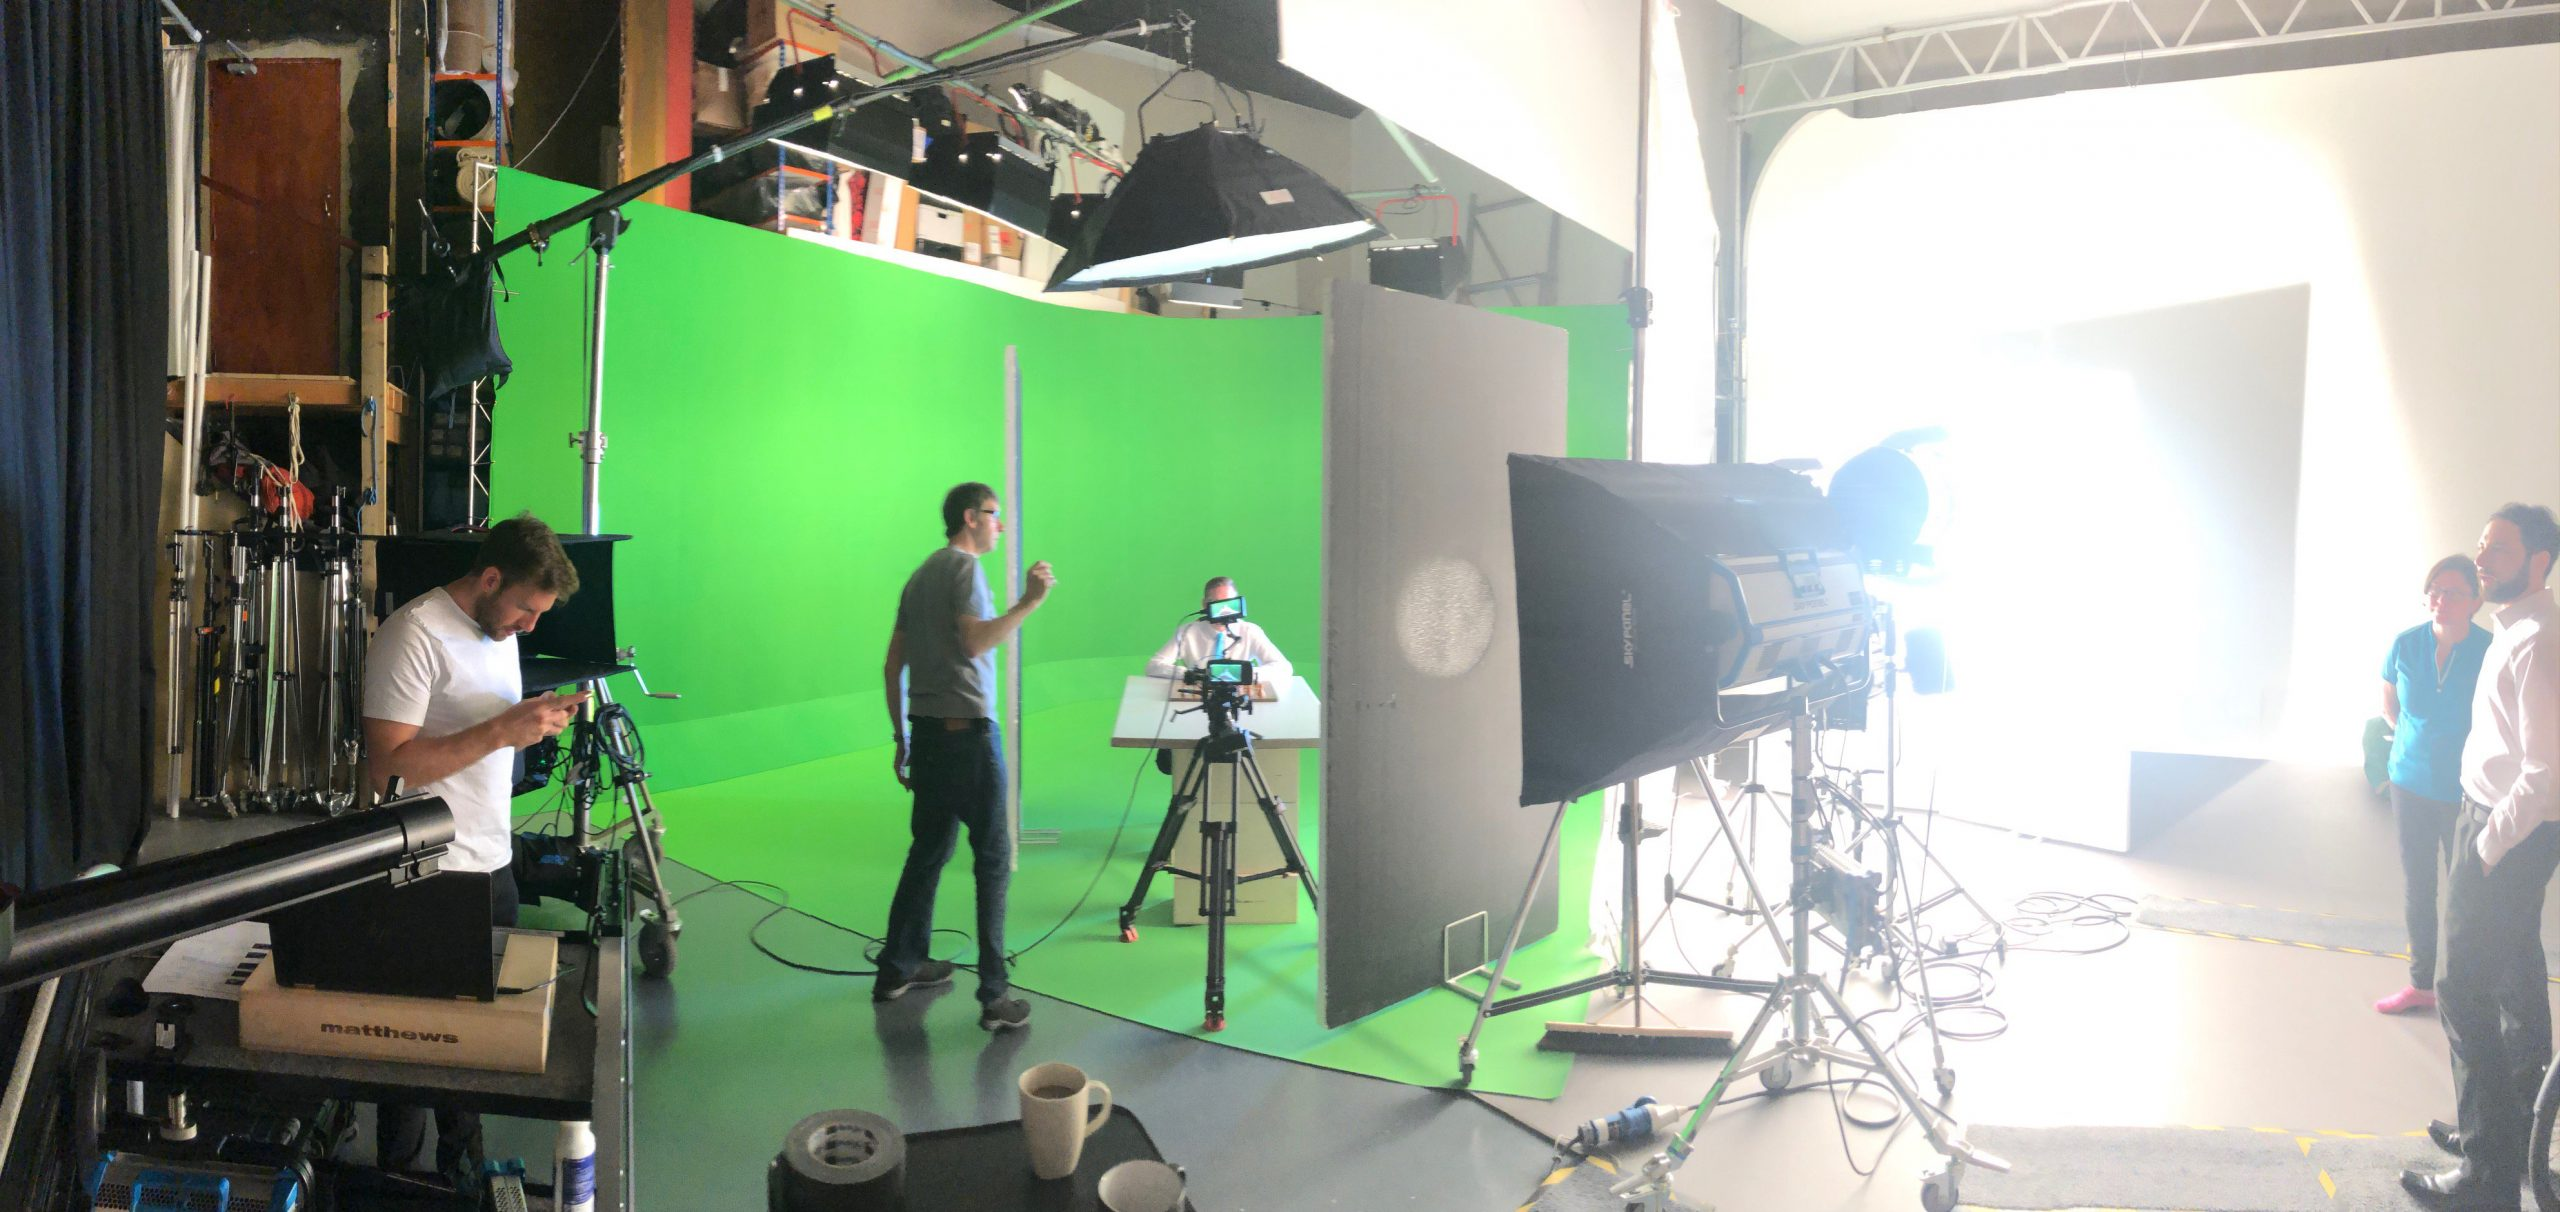 Bistech Filming Computer Image Photography on set